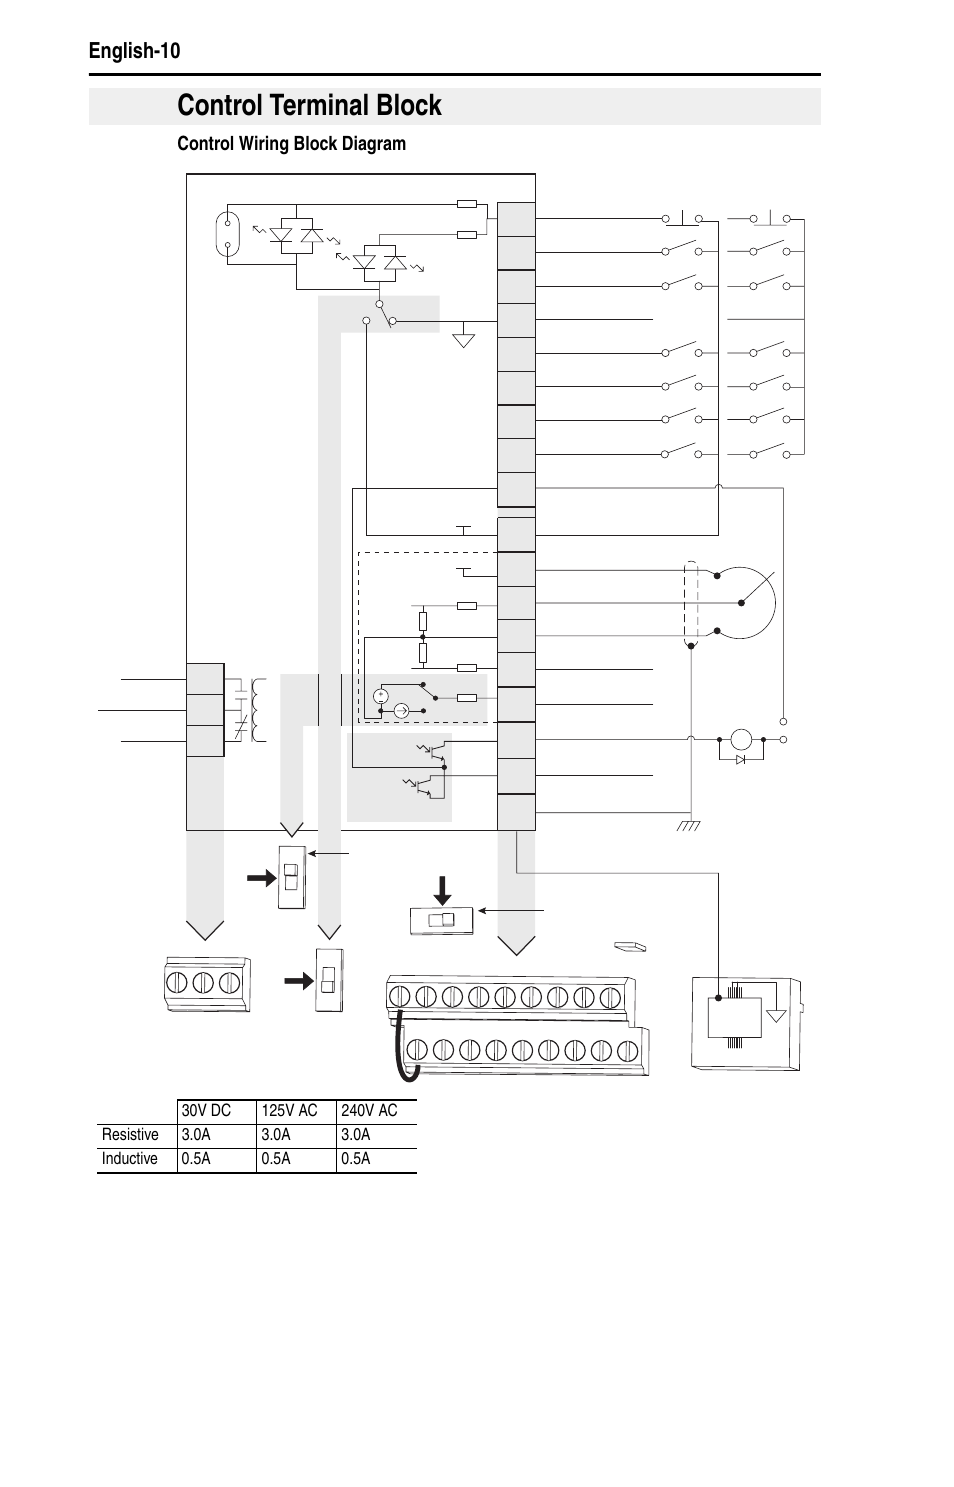 Powerflex 4 Wiring Diagram 40p Wire Center Control Terminal Block English 10 Rh Manualsdir Com Ab 40 Manual